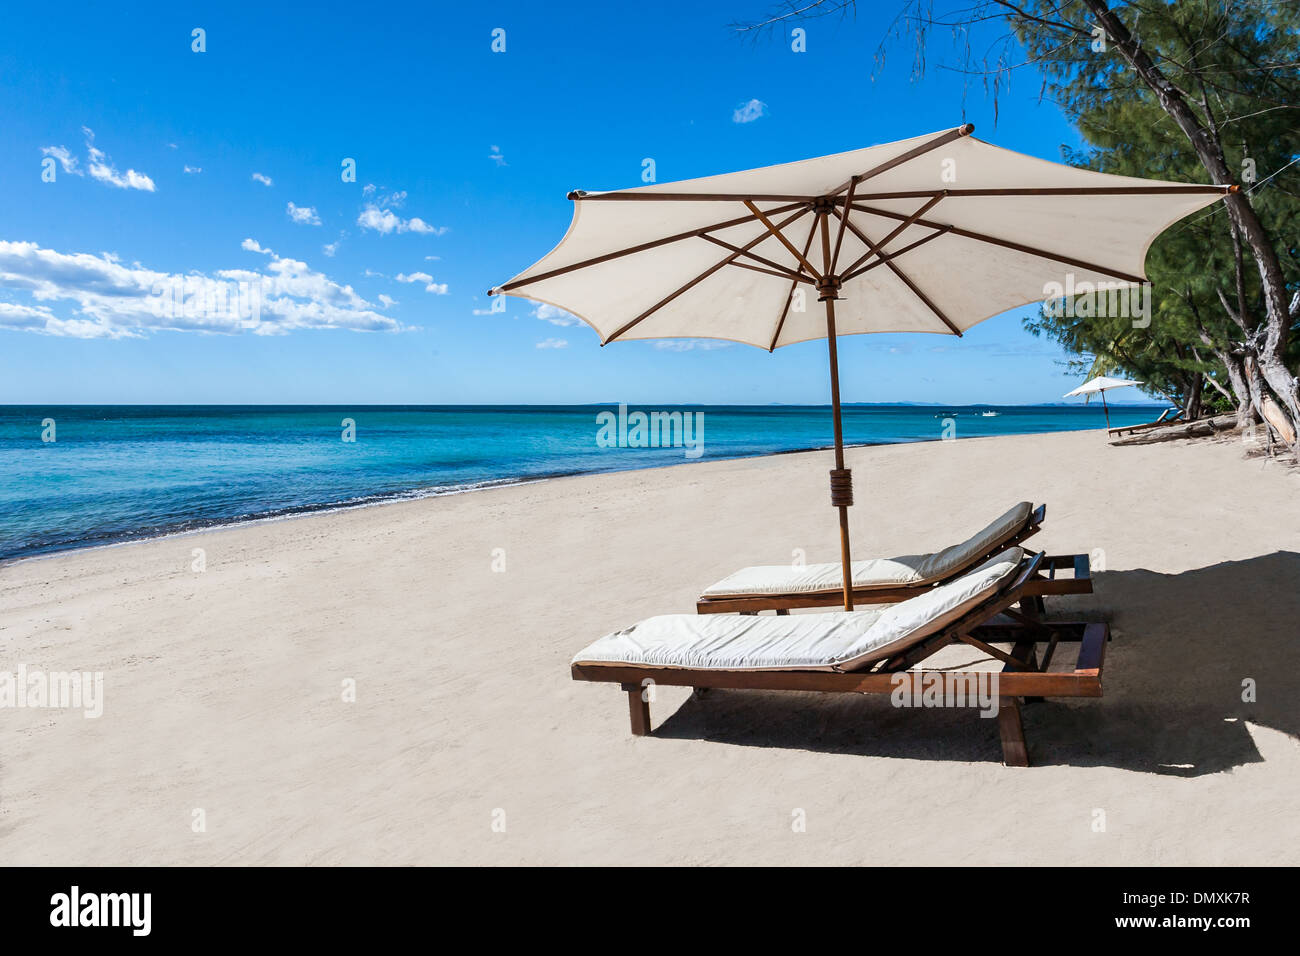 Sunbed and umbrella on a beautiful tropical beach - Stock Image